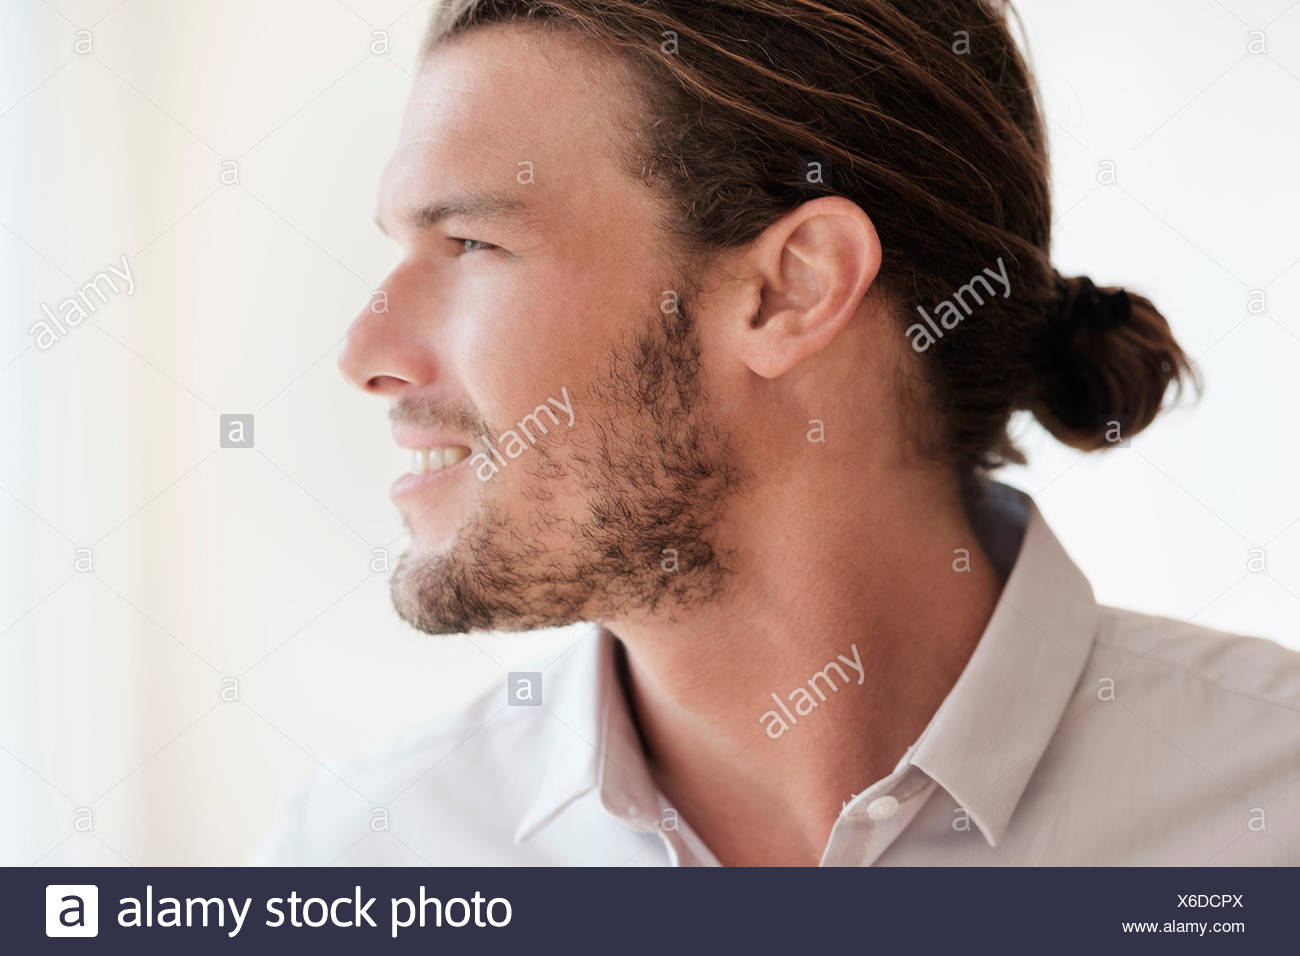 Mid-adult man looking away - Stock Image